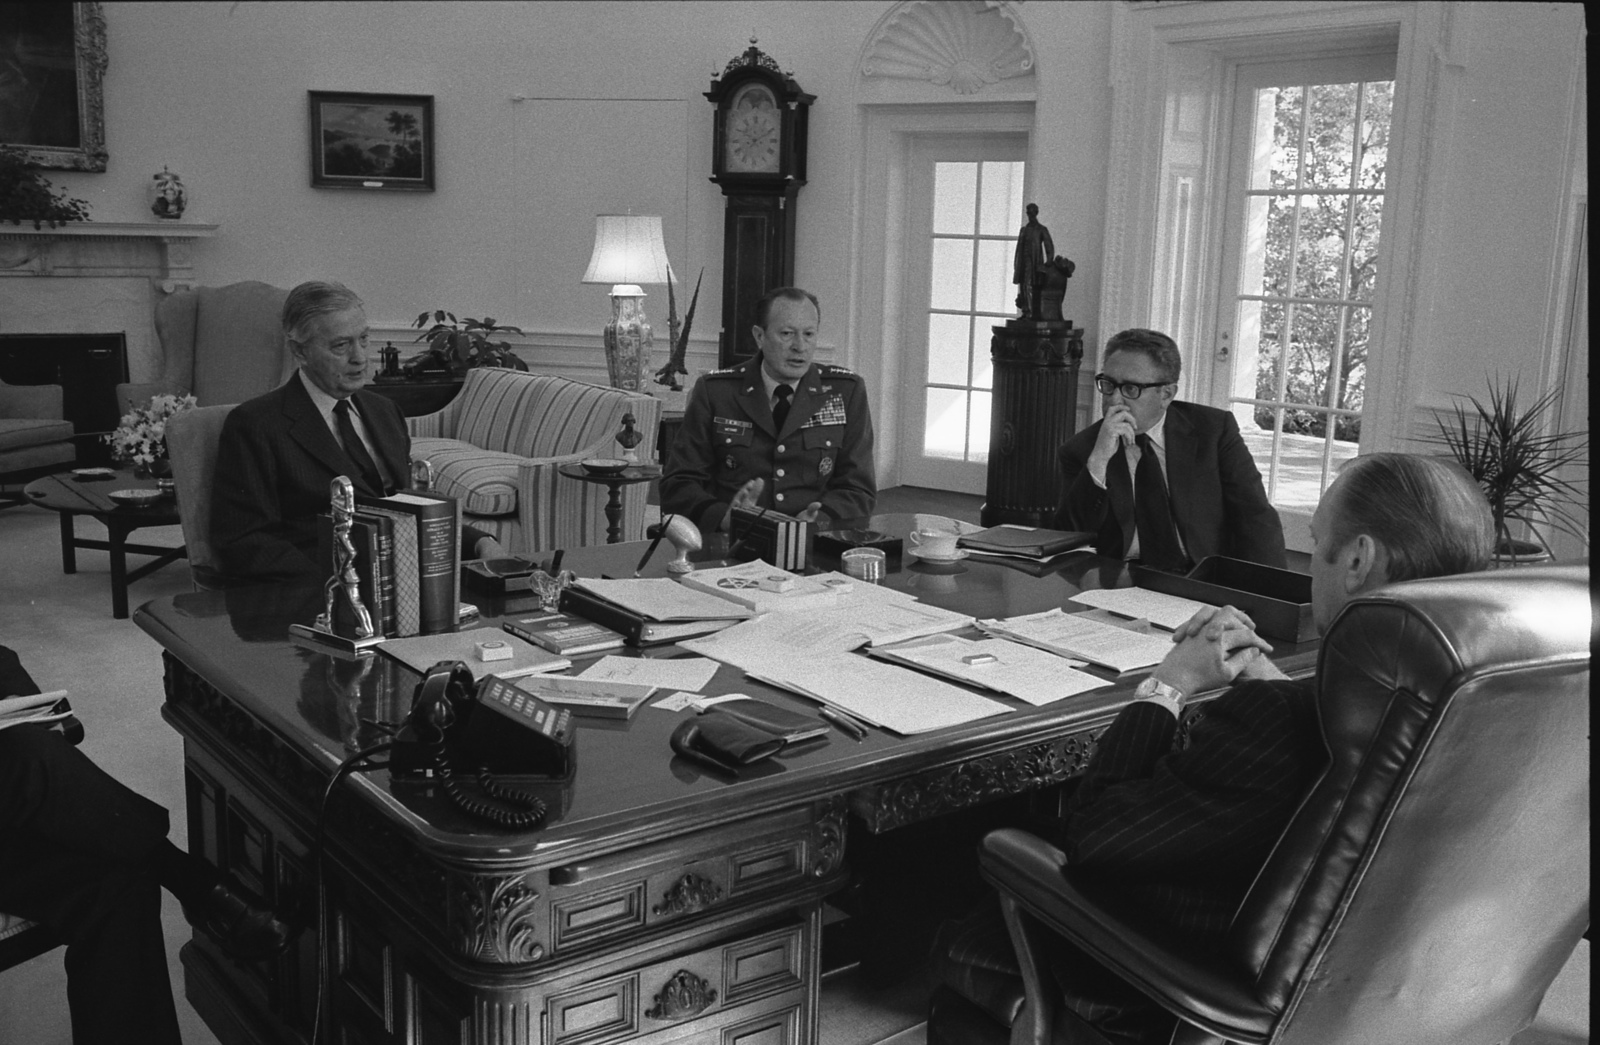 Photograph of President Gerald Ford Meeting with Brent Scowcroft, Graham Martin, General Frederick Weyand, and Henry Kissinger in the Oval Office to Discuss the Situation in Vietnam